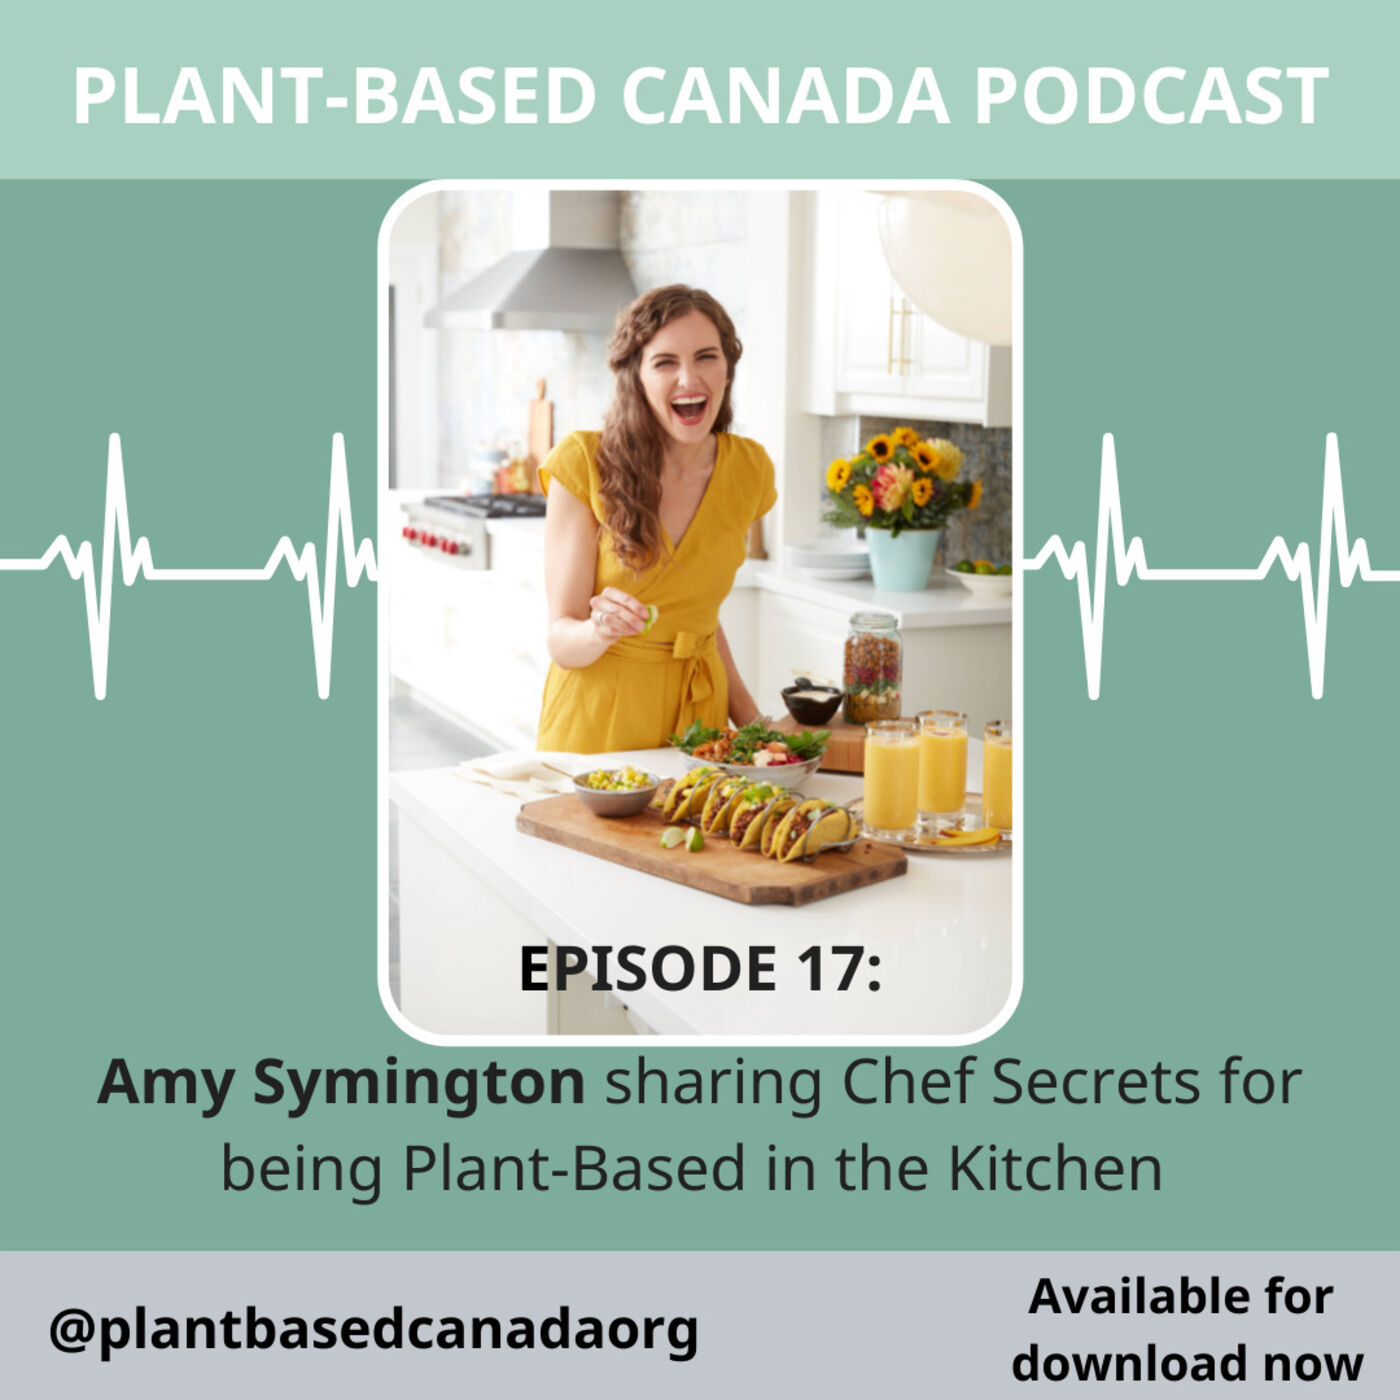 Episode 17: Amy Symington sharing Chef Secrets for being Plant-Based in the Kitchen